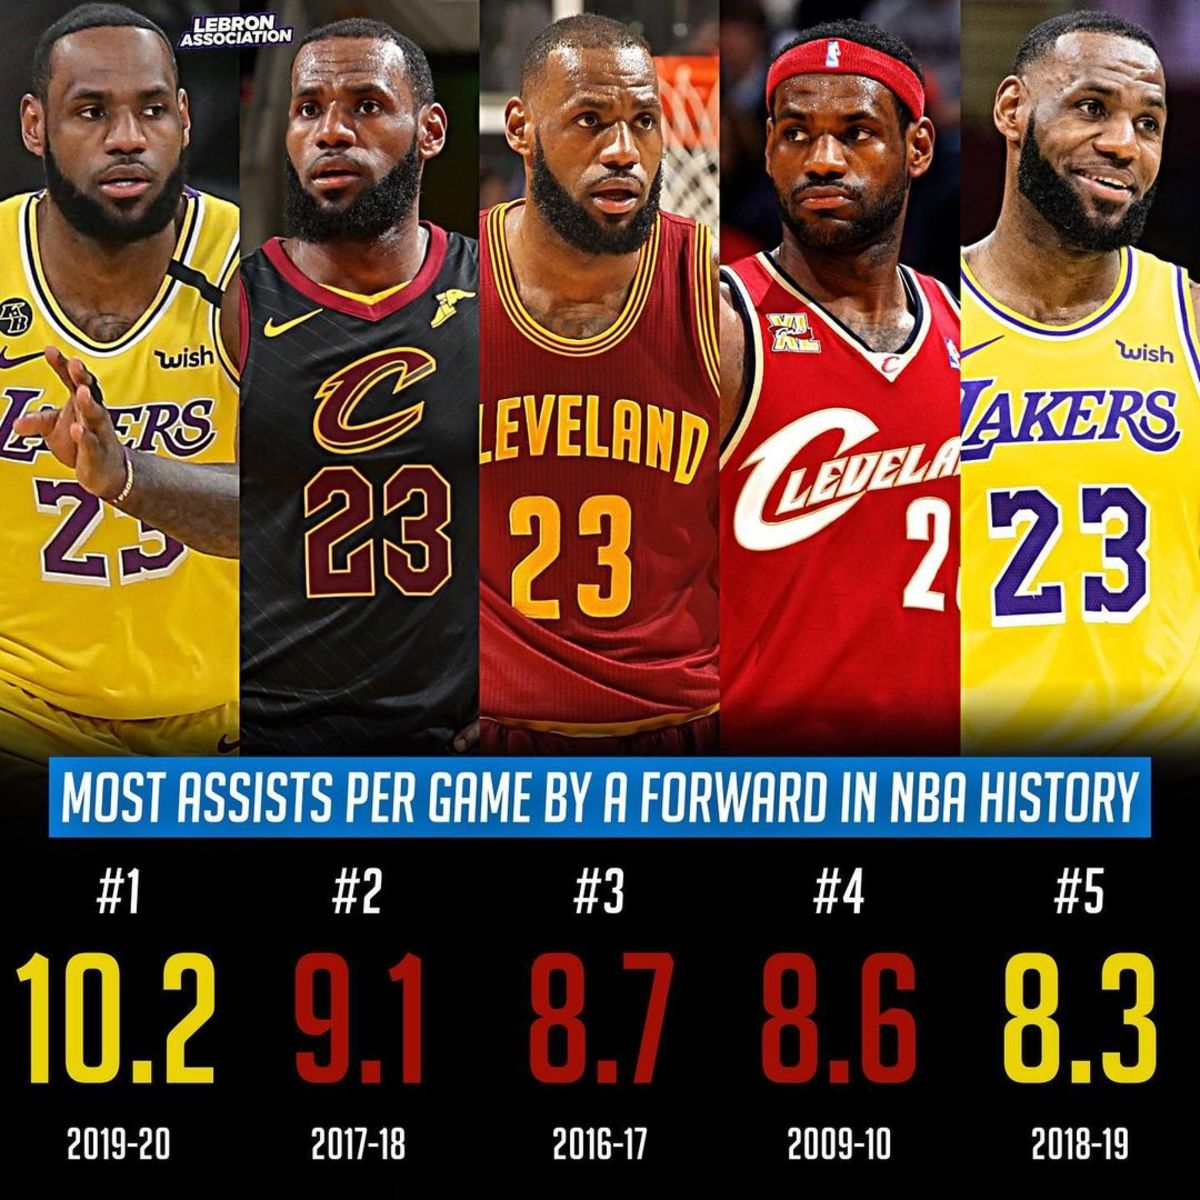 LeBron James Holds 1-5 Spots In NBA History For Most APG By A Foward